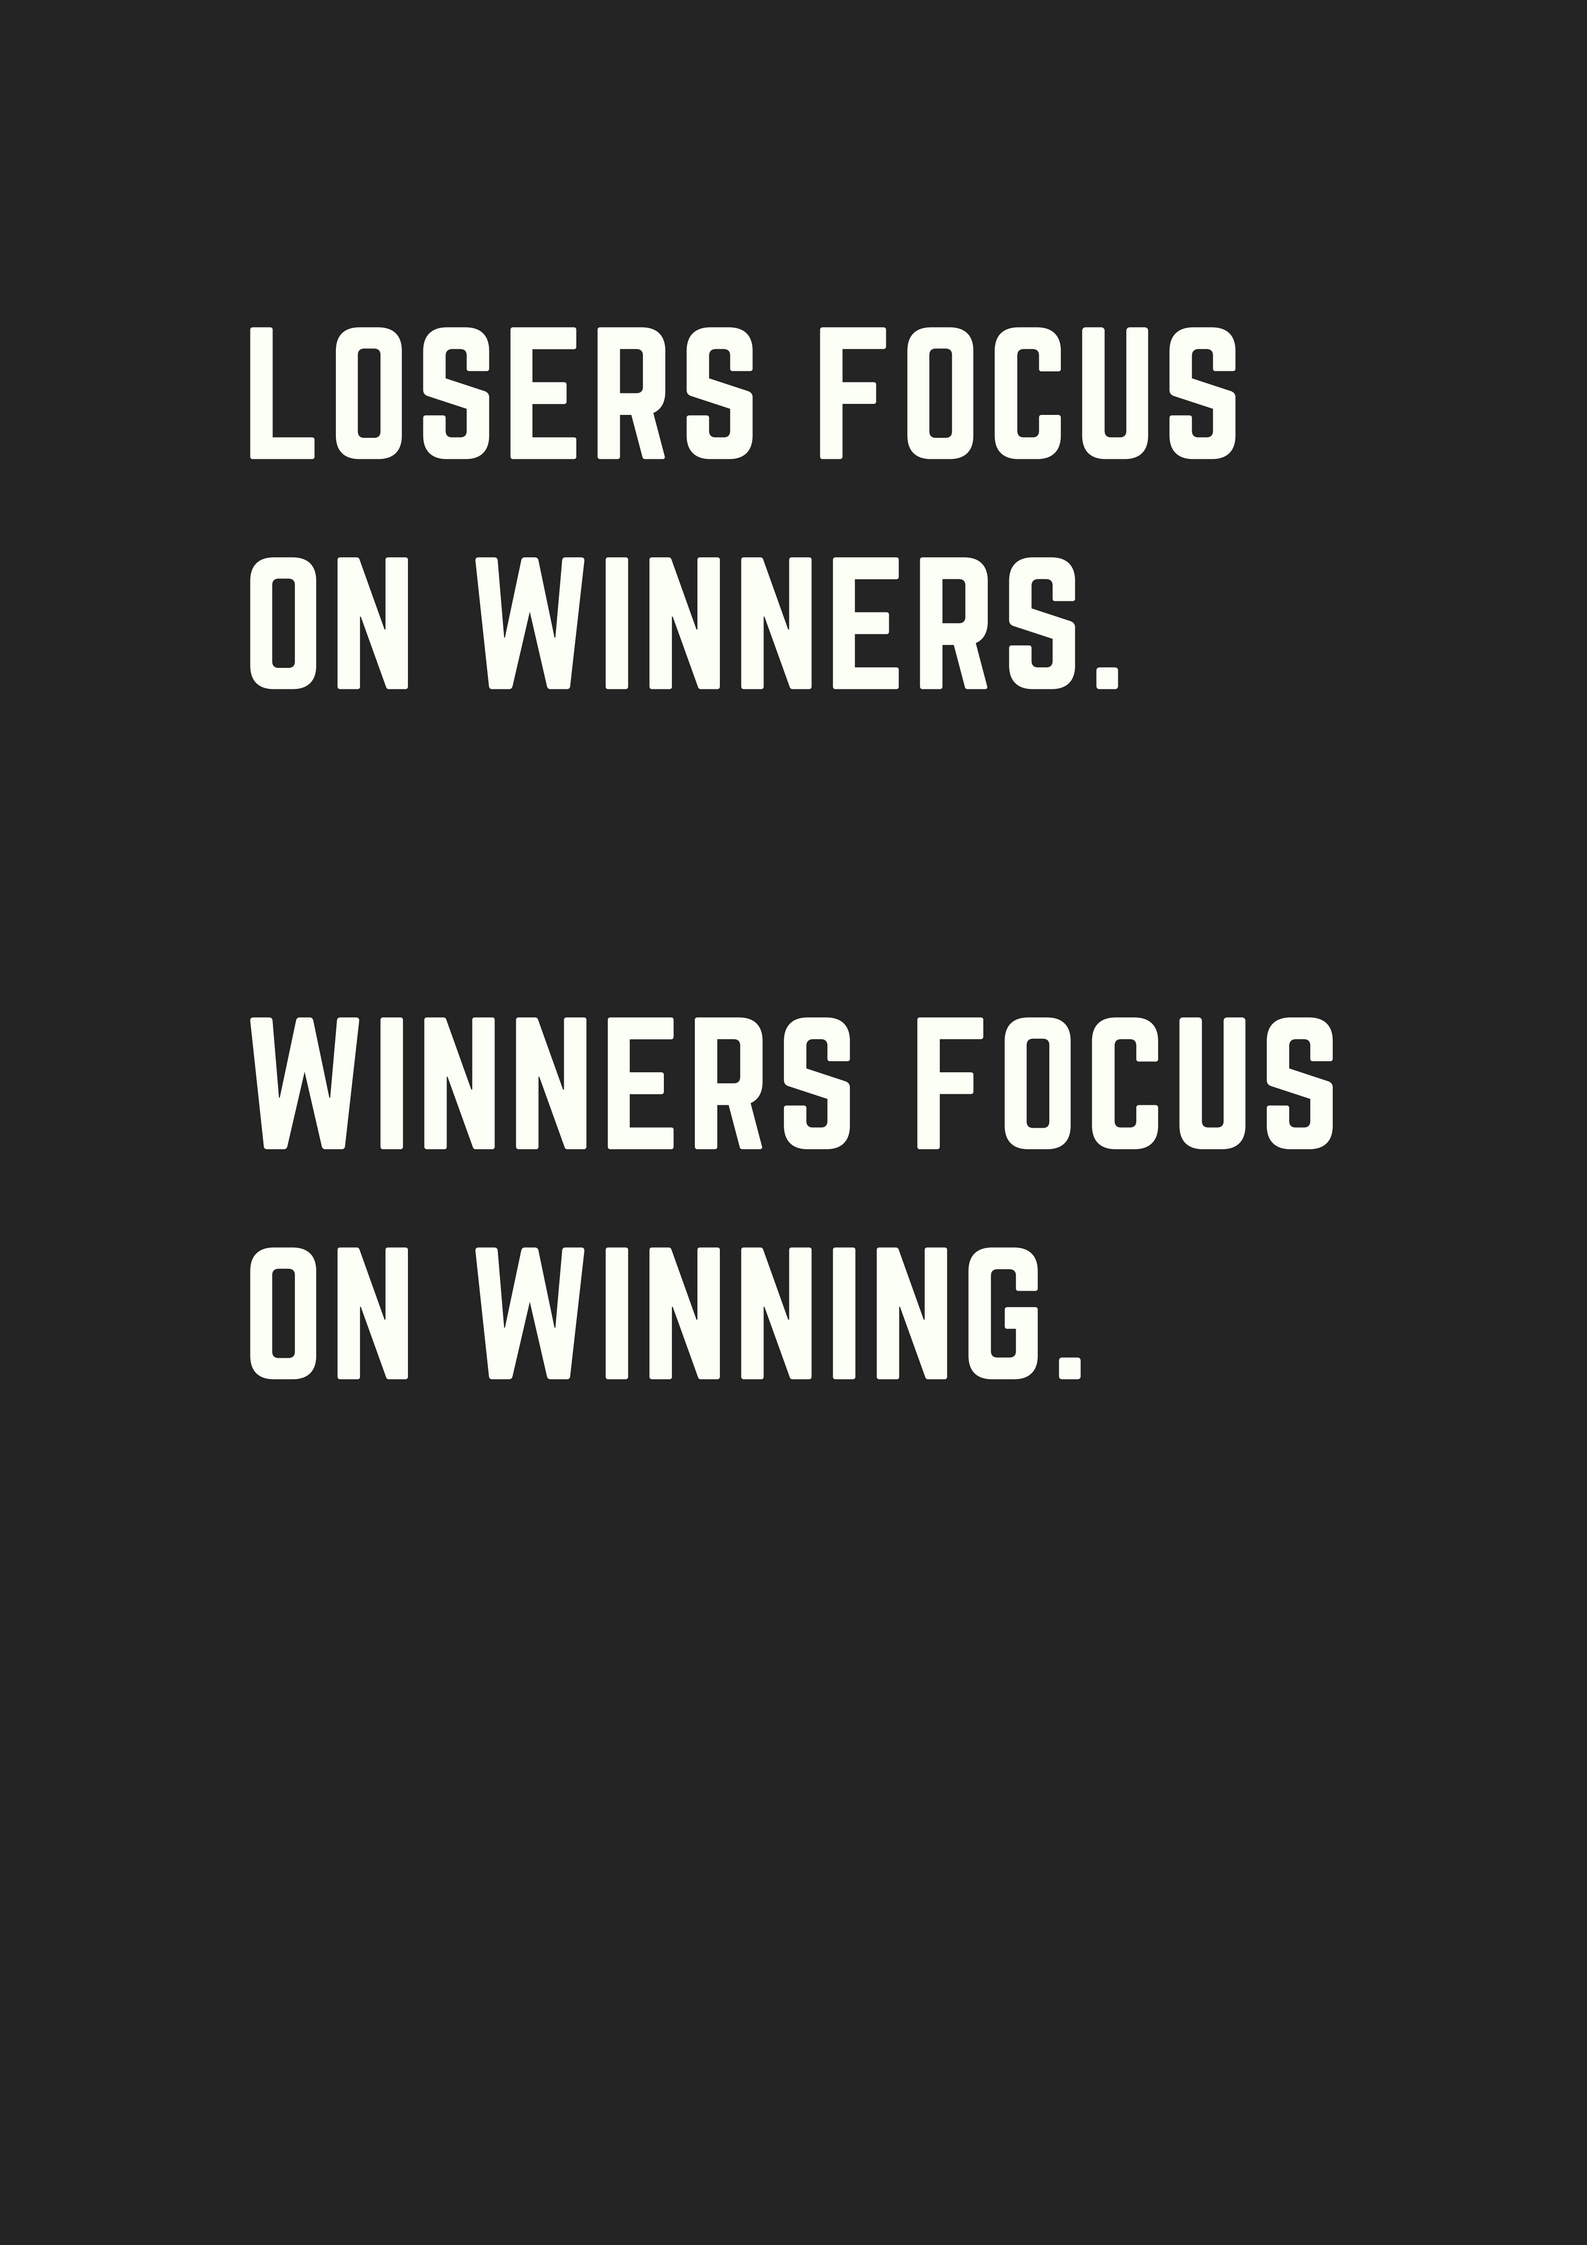 Top 10 Black And White Inspirational Quotes Winning Quotes Winner Quotes Quotes About Haters